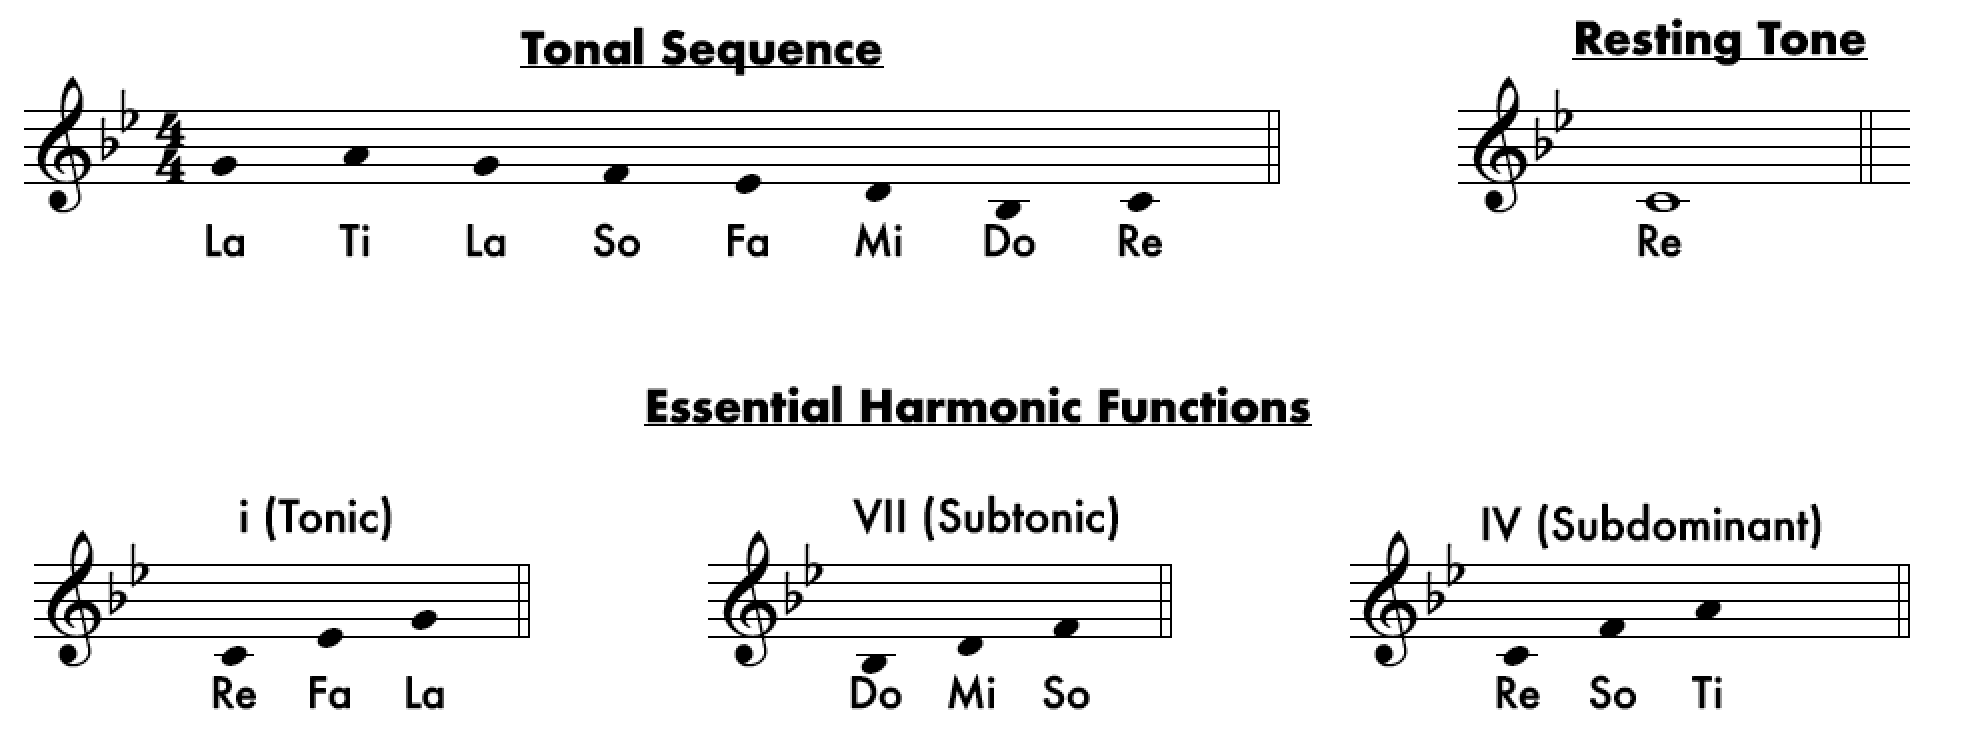 Dorian Tonality - From Major to Locrian: An Overview of The Tonalities